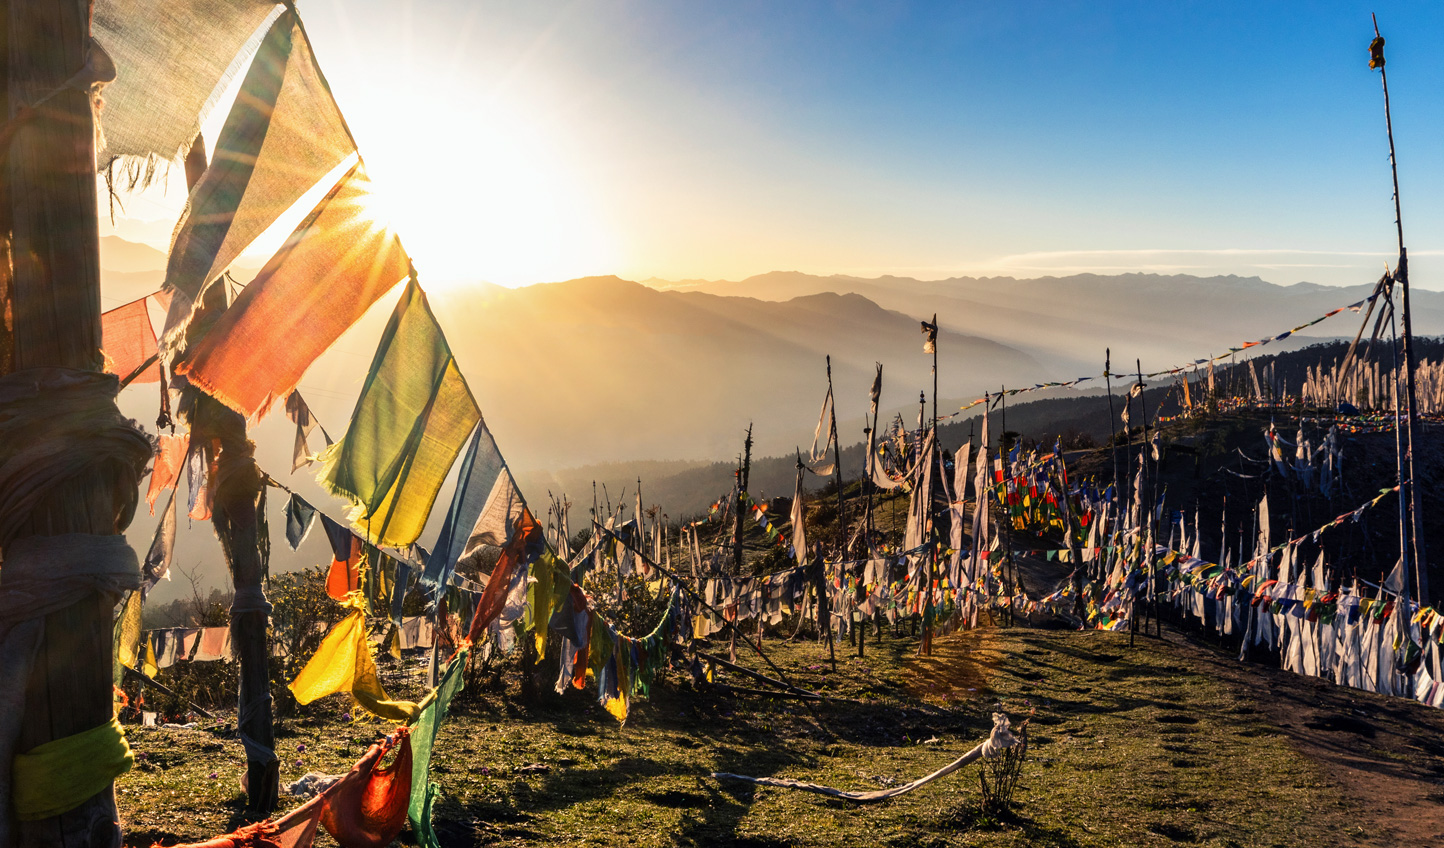 Head up to Chele La Pass and tie a prayer flag in the wind